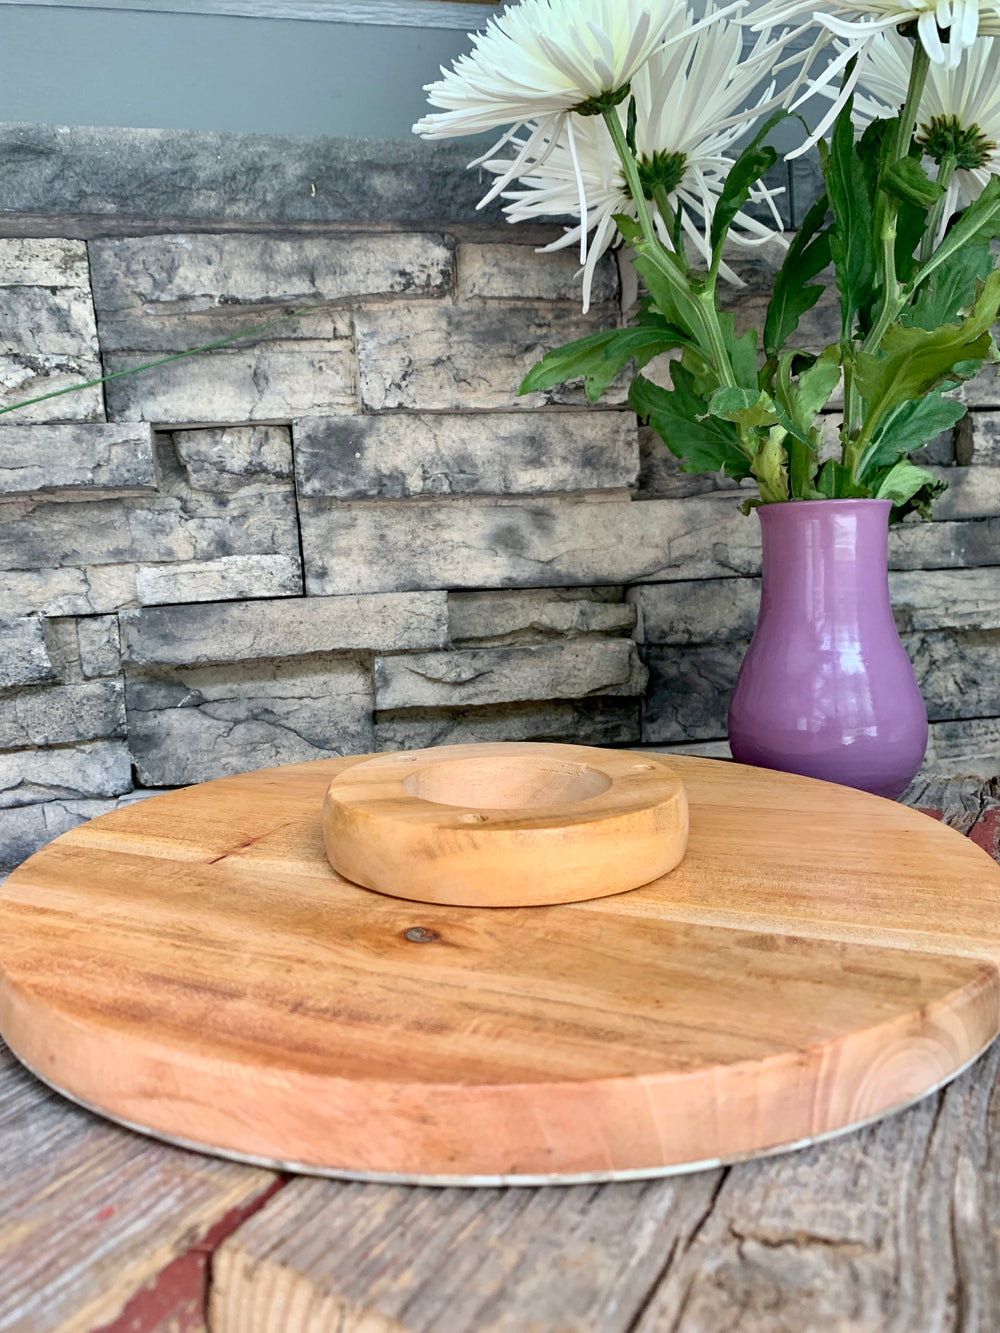 Cake Platter and Charcuterie Board by Atelier Calla from Haiti